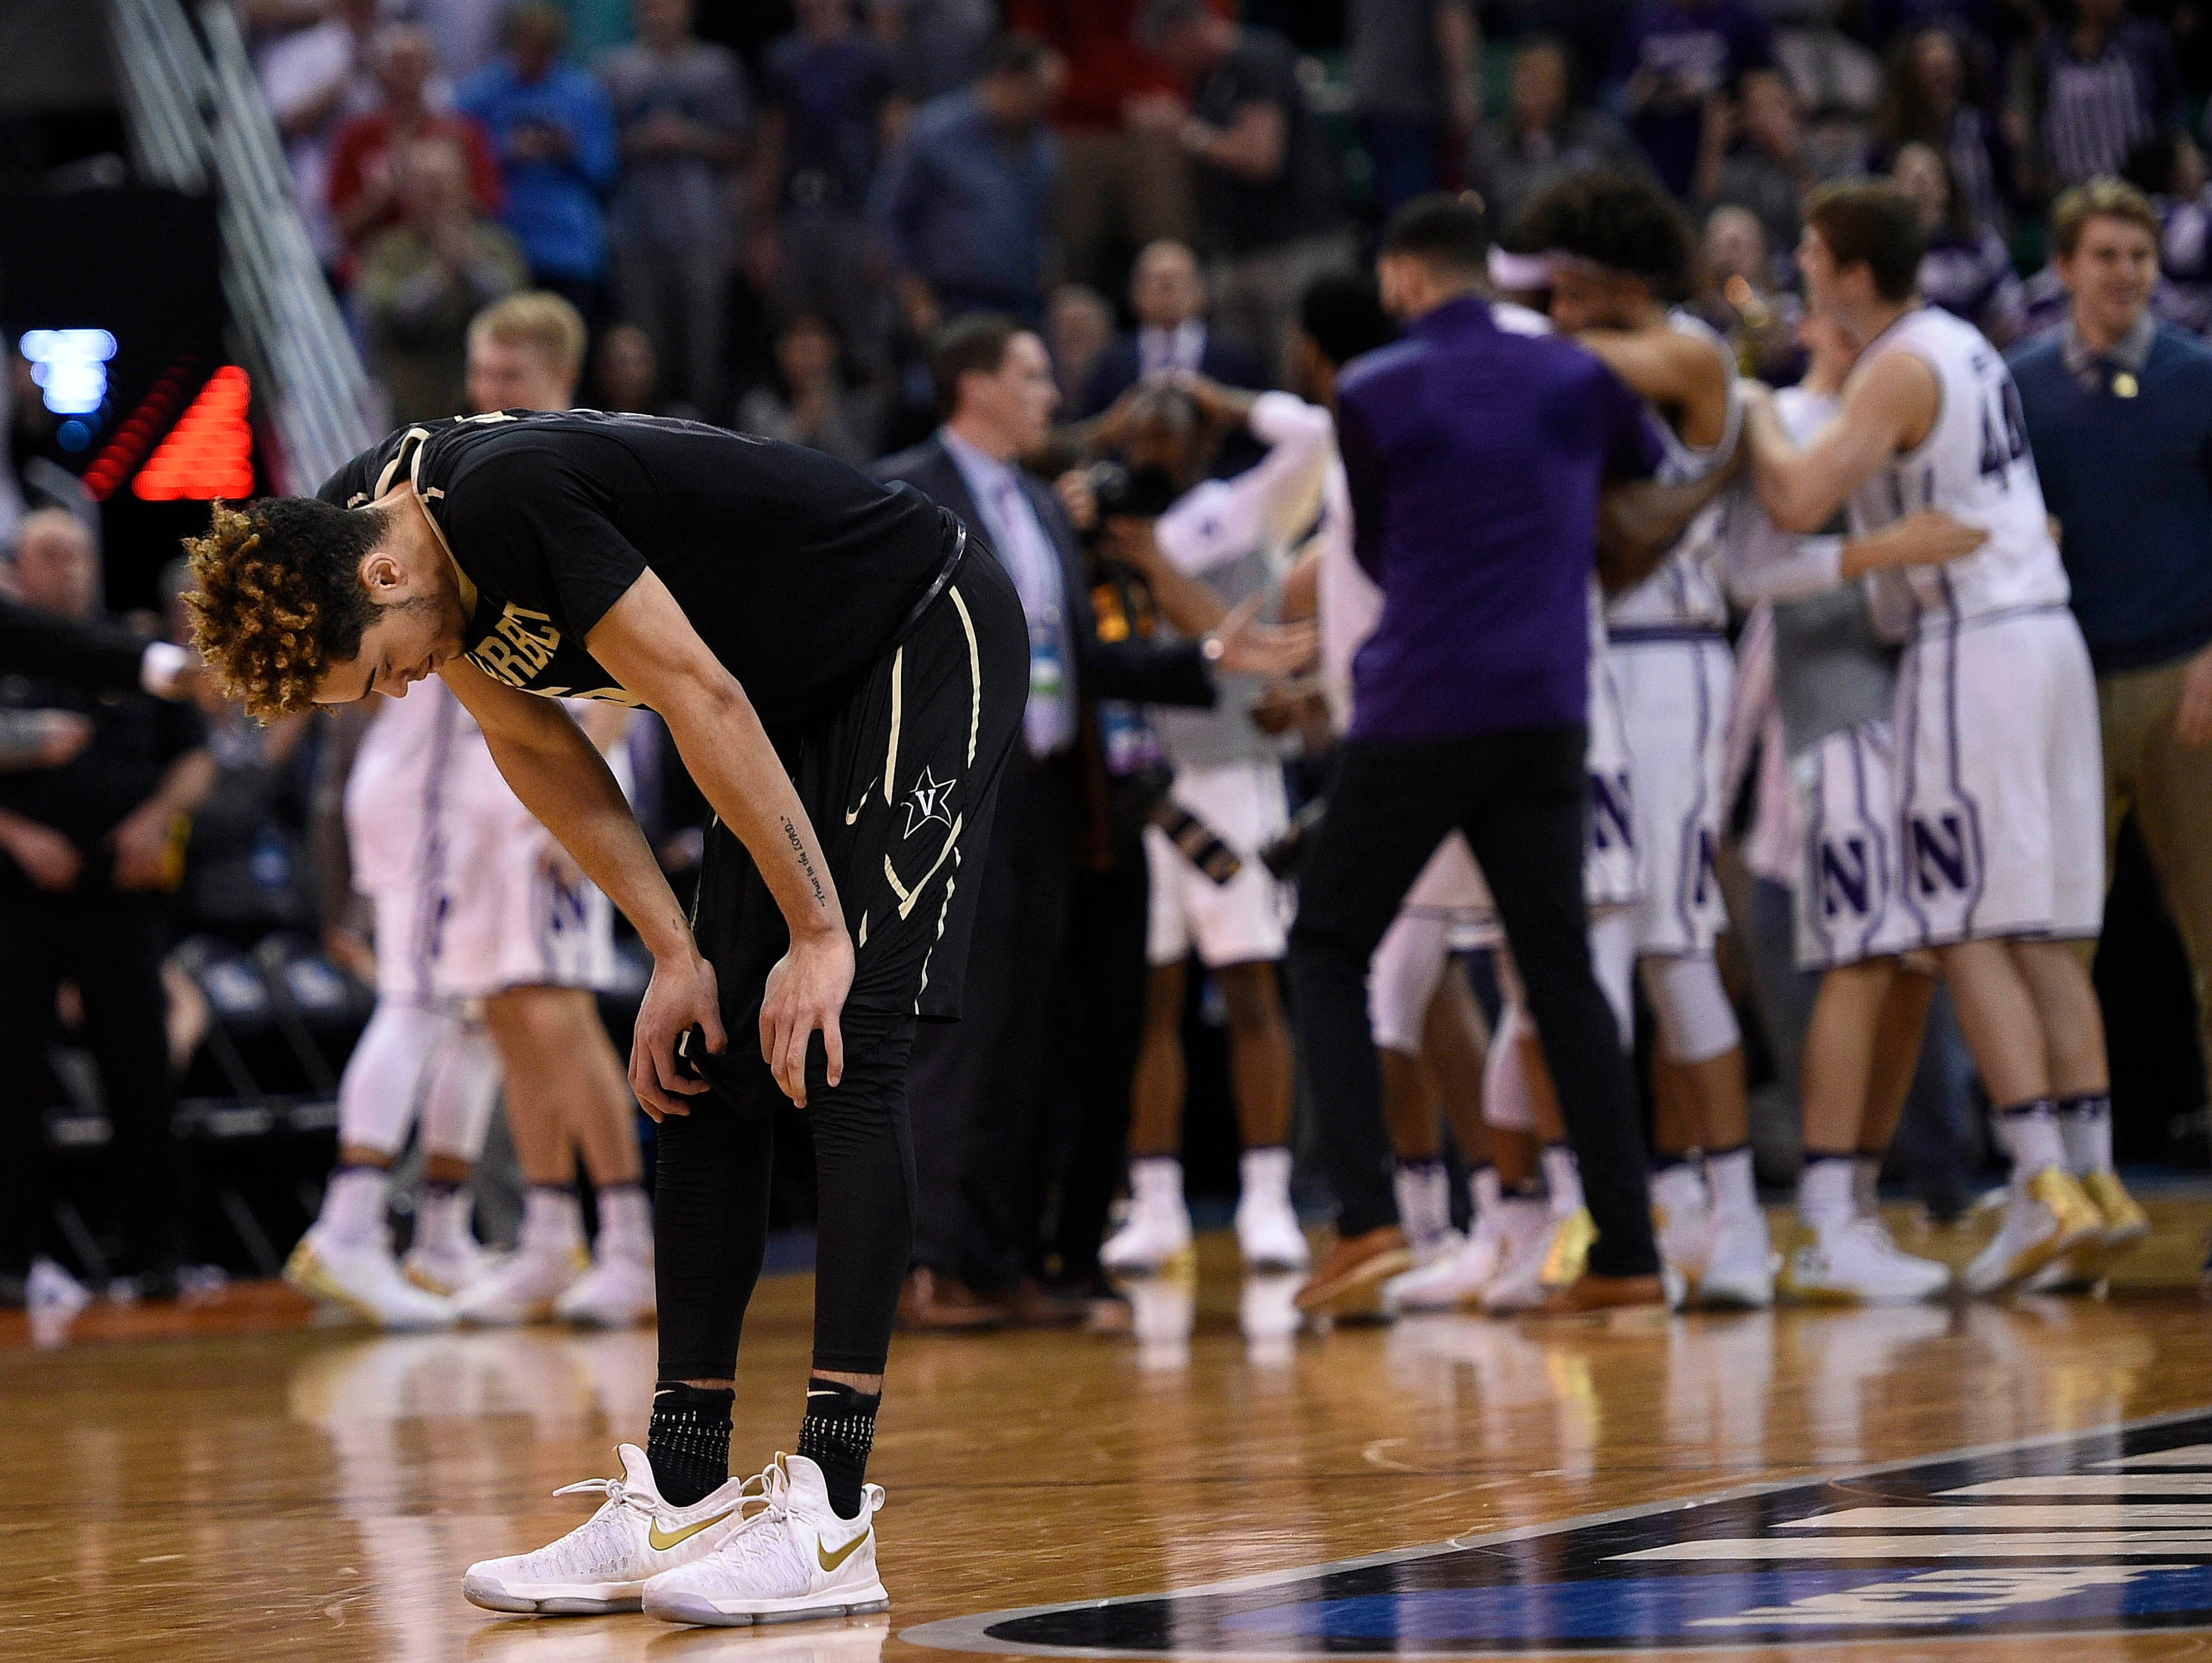 Vanderbilt guard Matthew Fisher-Davis (5) reacts following the 68-66 loss against Northwestern in the first round of the NCAA tournament in Salt Lake City on March 16, 2017.